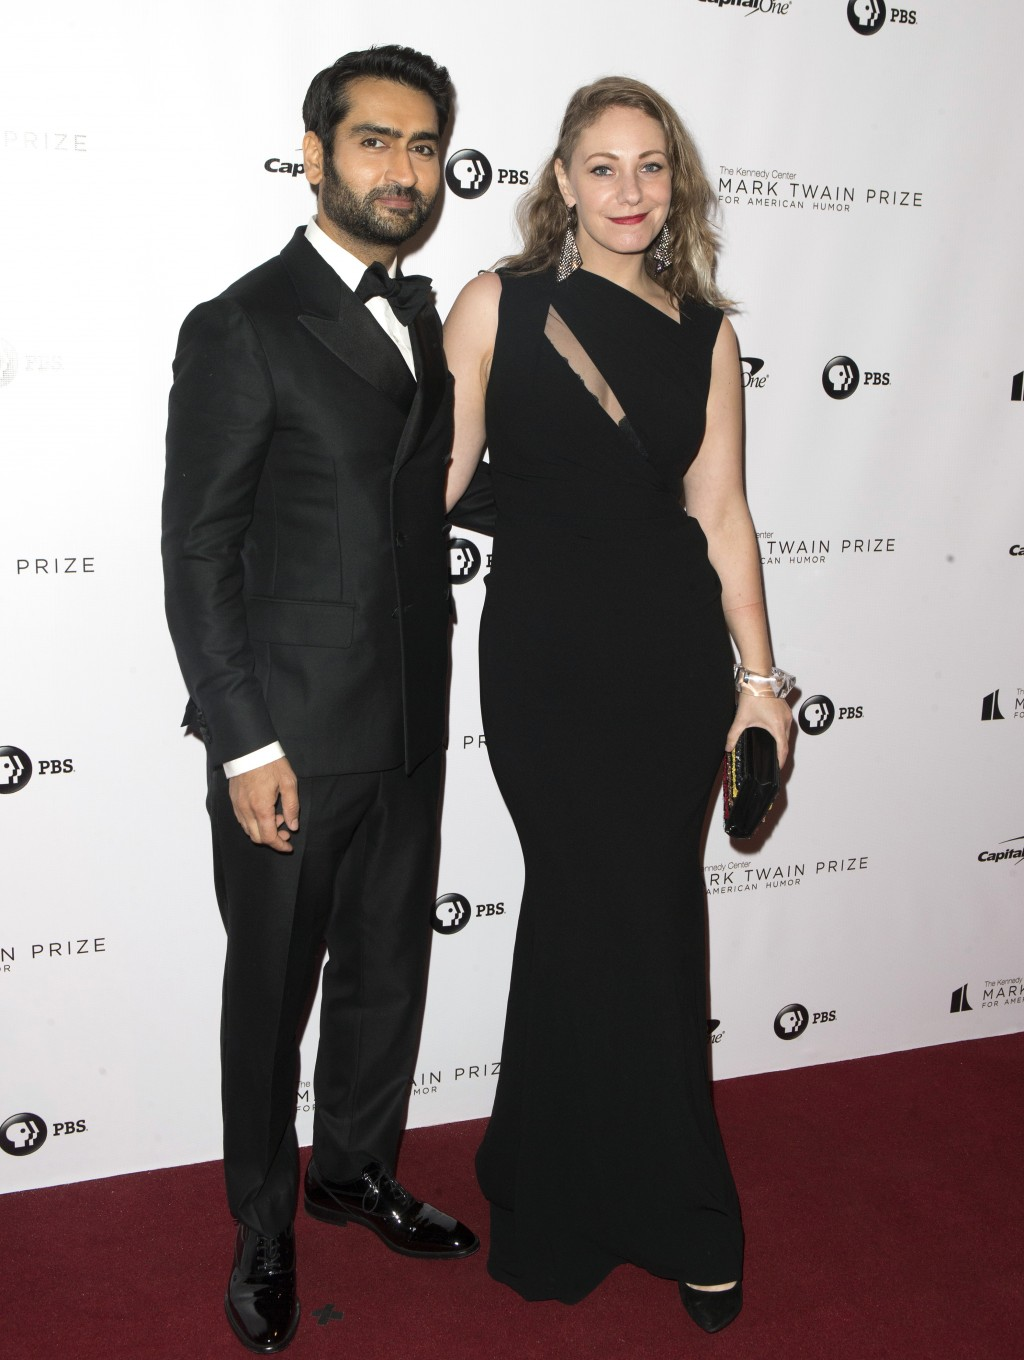 Kumail Nanjiani and his wife, Emily Gordon, arrive at the Kennedy Center for the Performing Arts for the 21st Annual Mark Twain Prize for American Hum